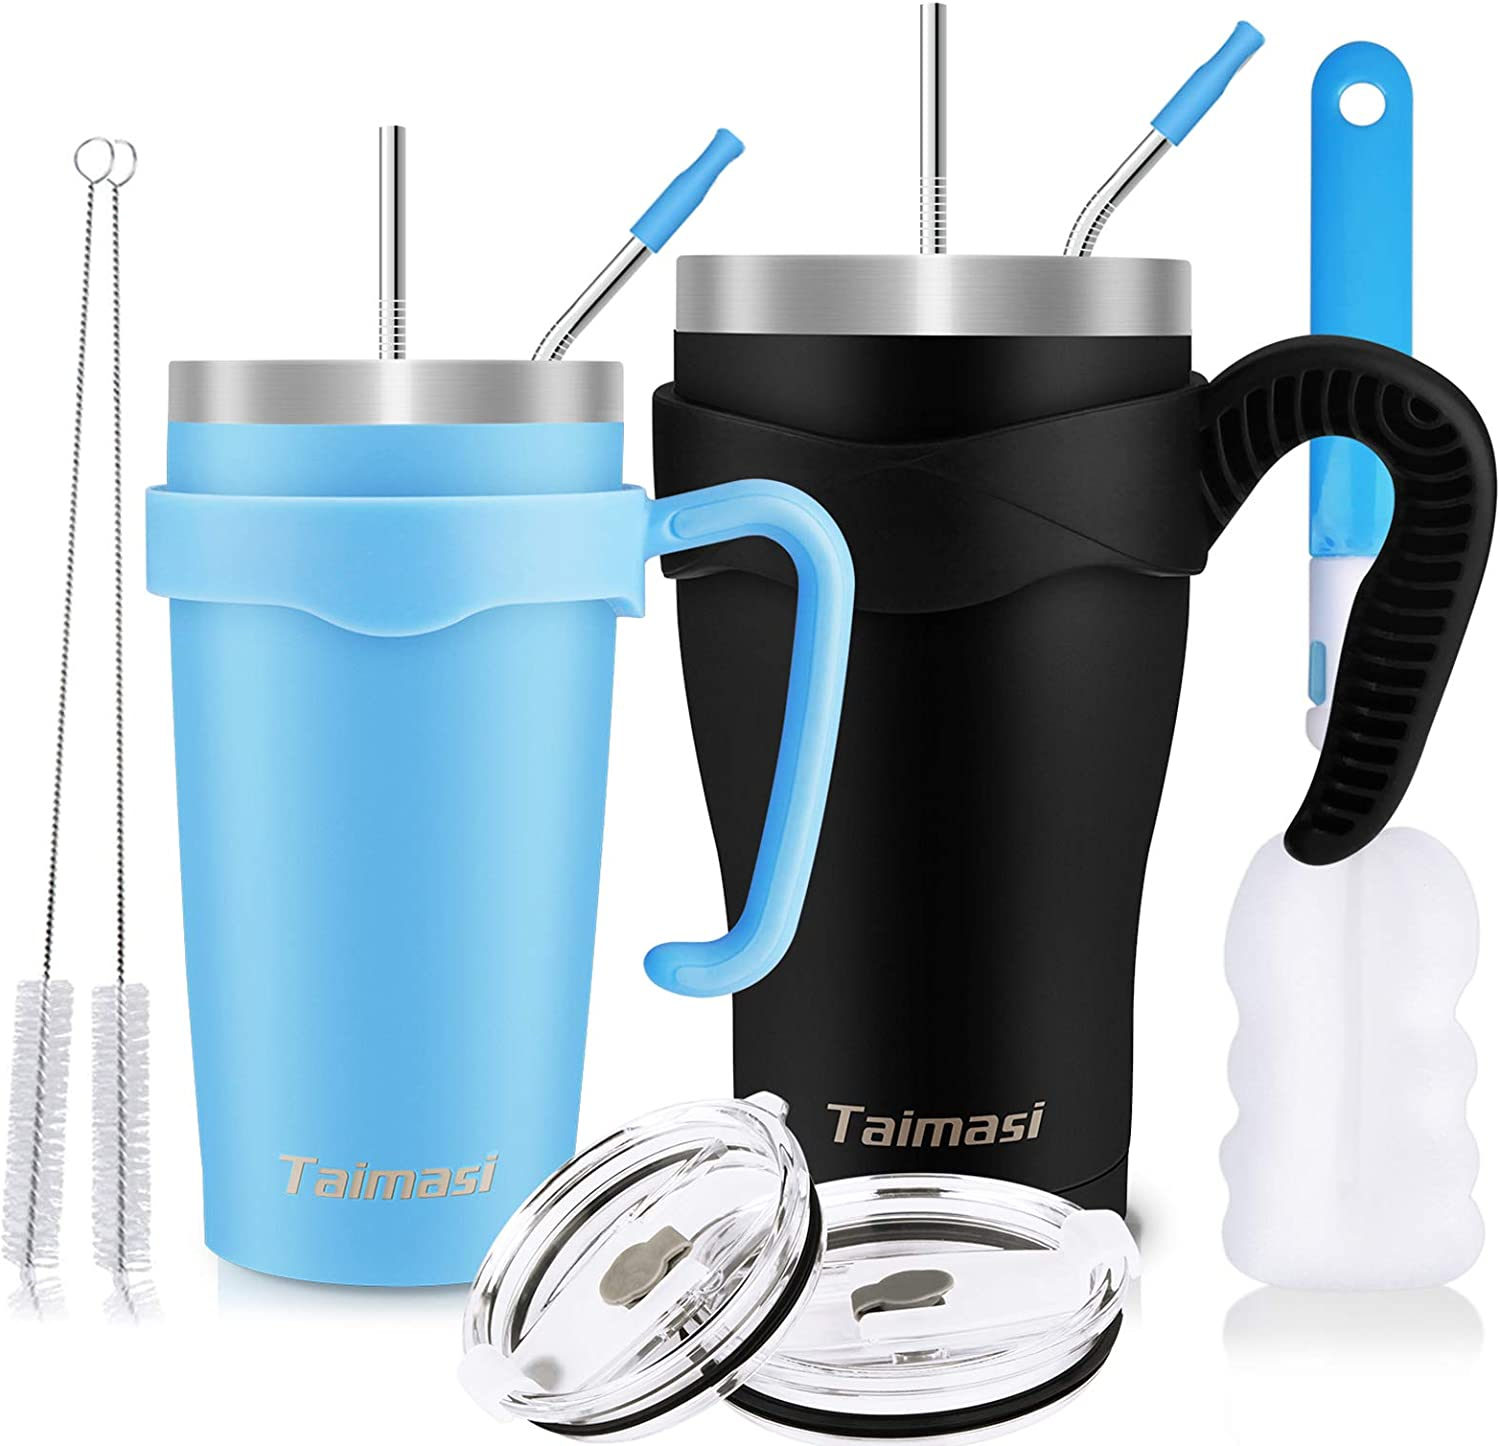 hot beverage. office home Mencom coffee tumbler stainless steel tumbler with lids and straw school-suitable for cold drinks Vacuum insulated wine coffee tumbler cup for private car